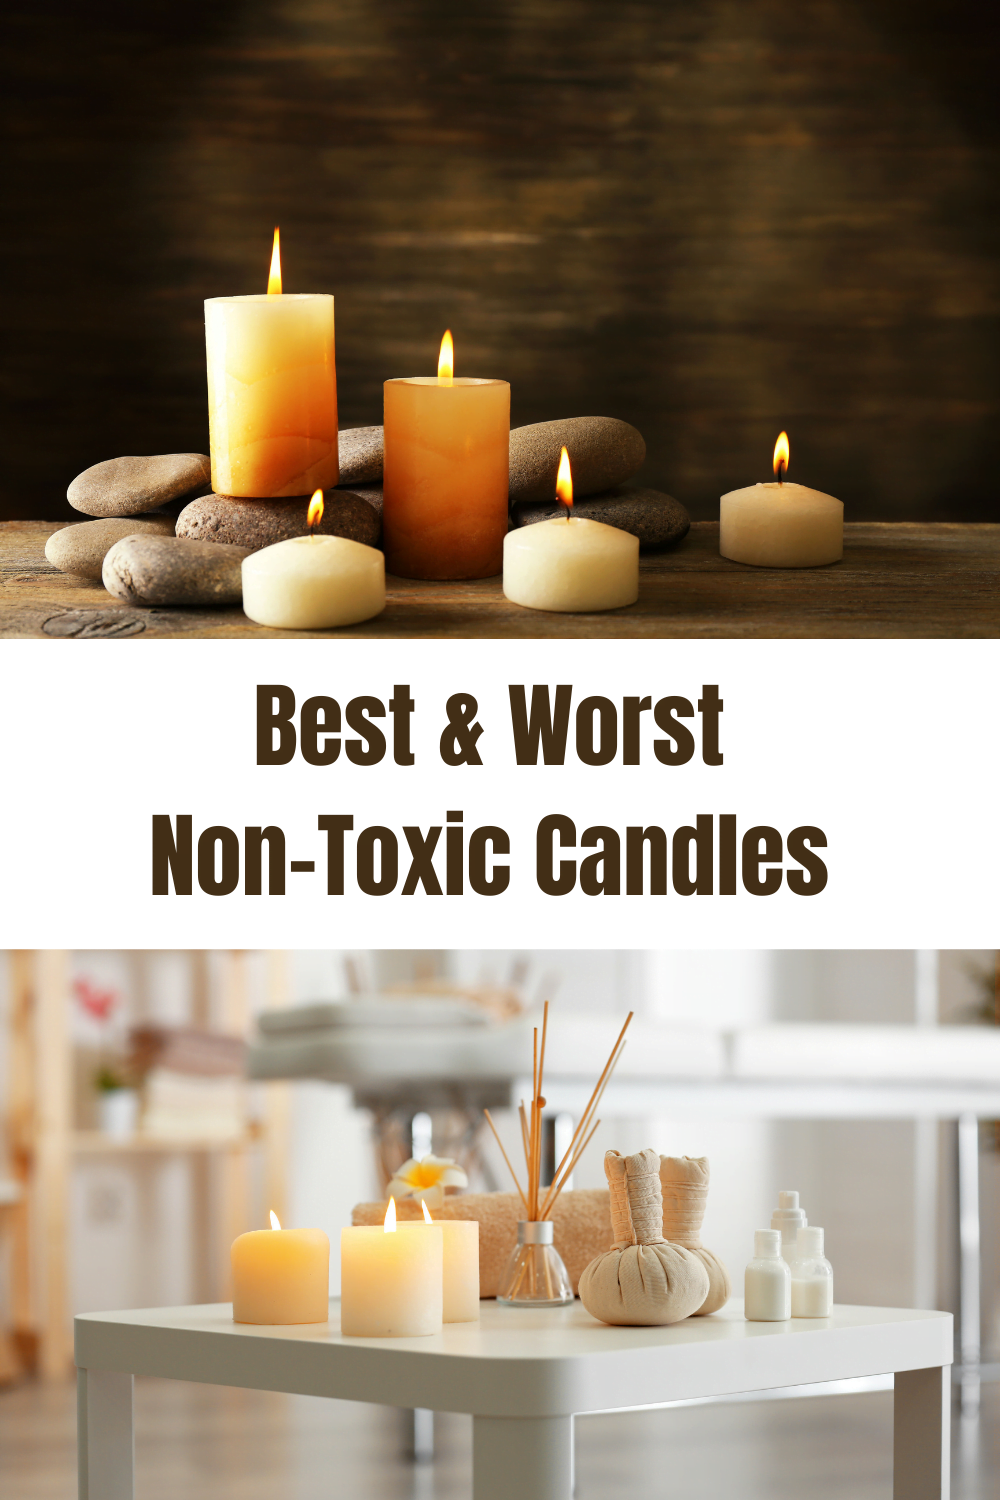 Best & Worst Non-toxic candles